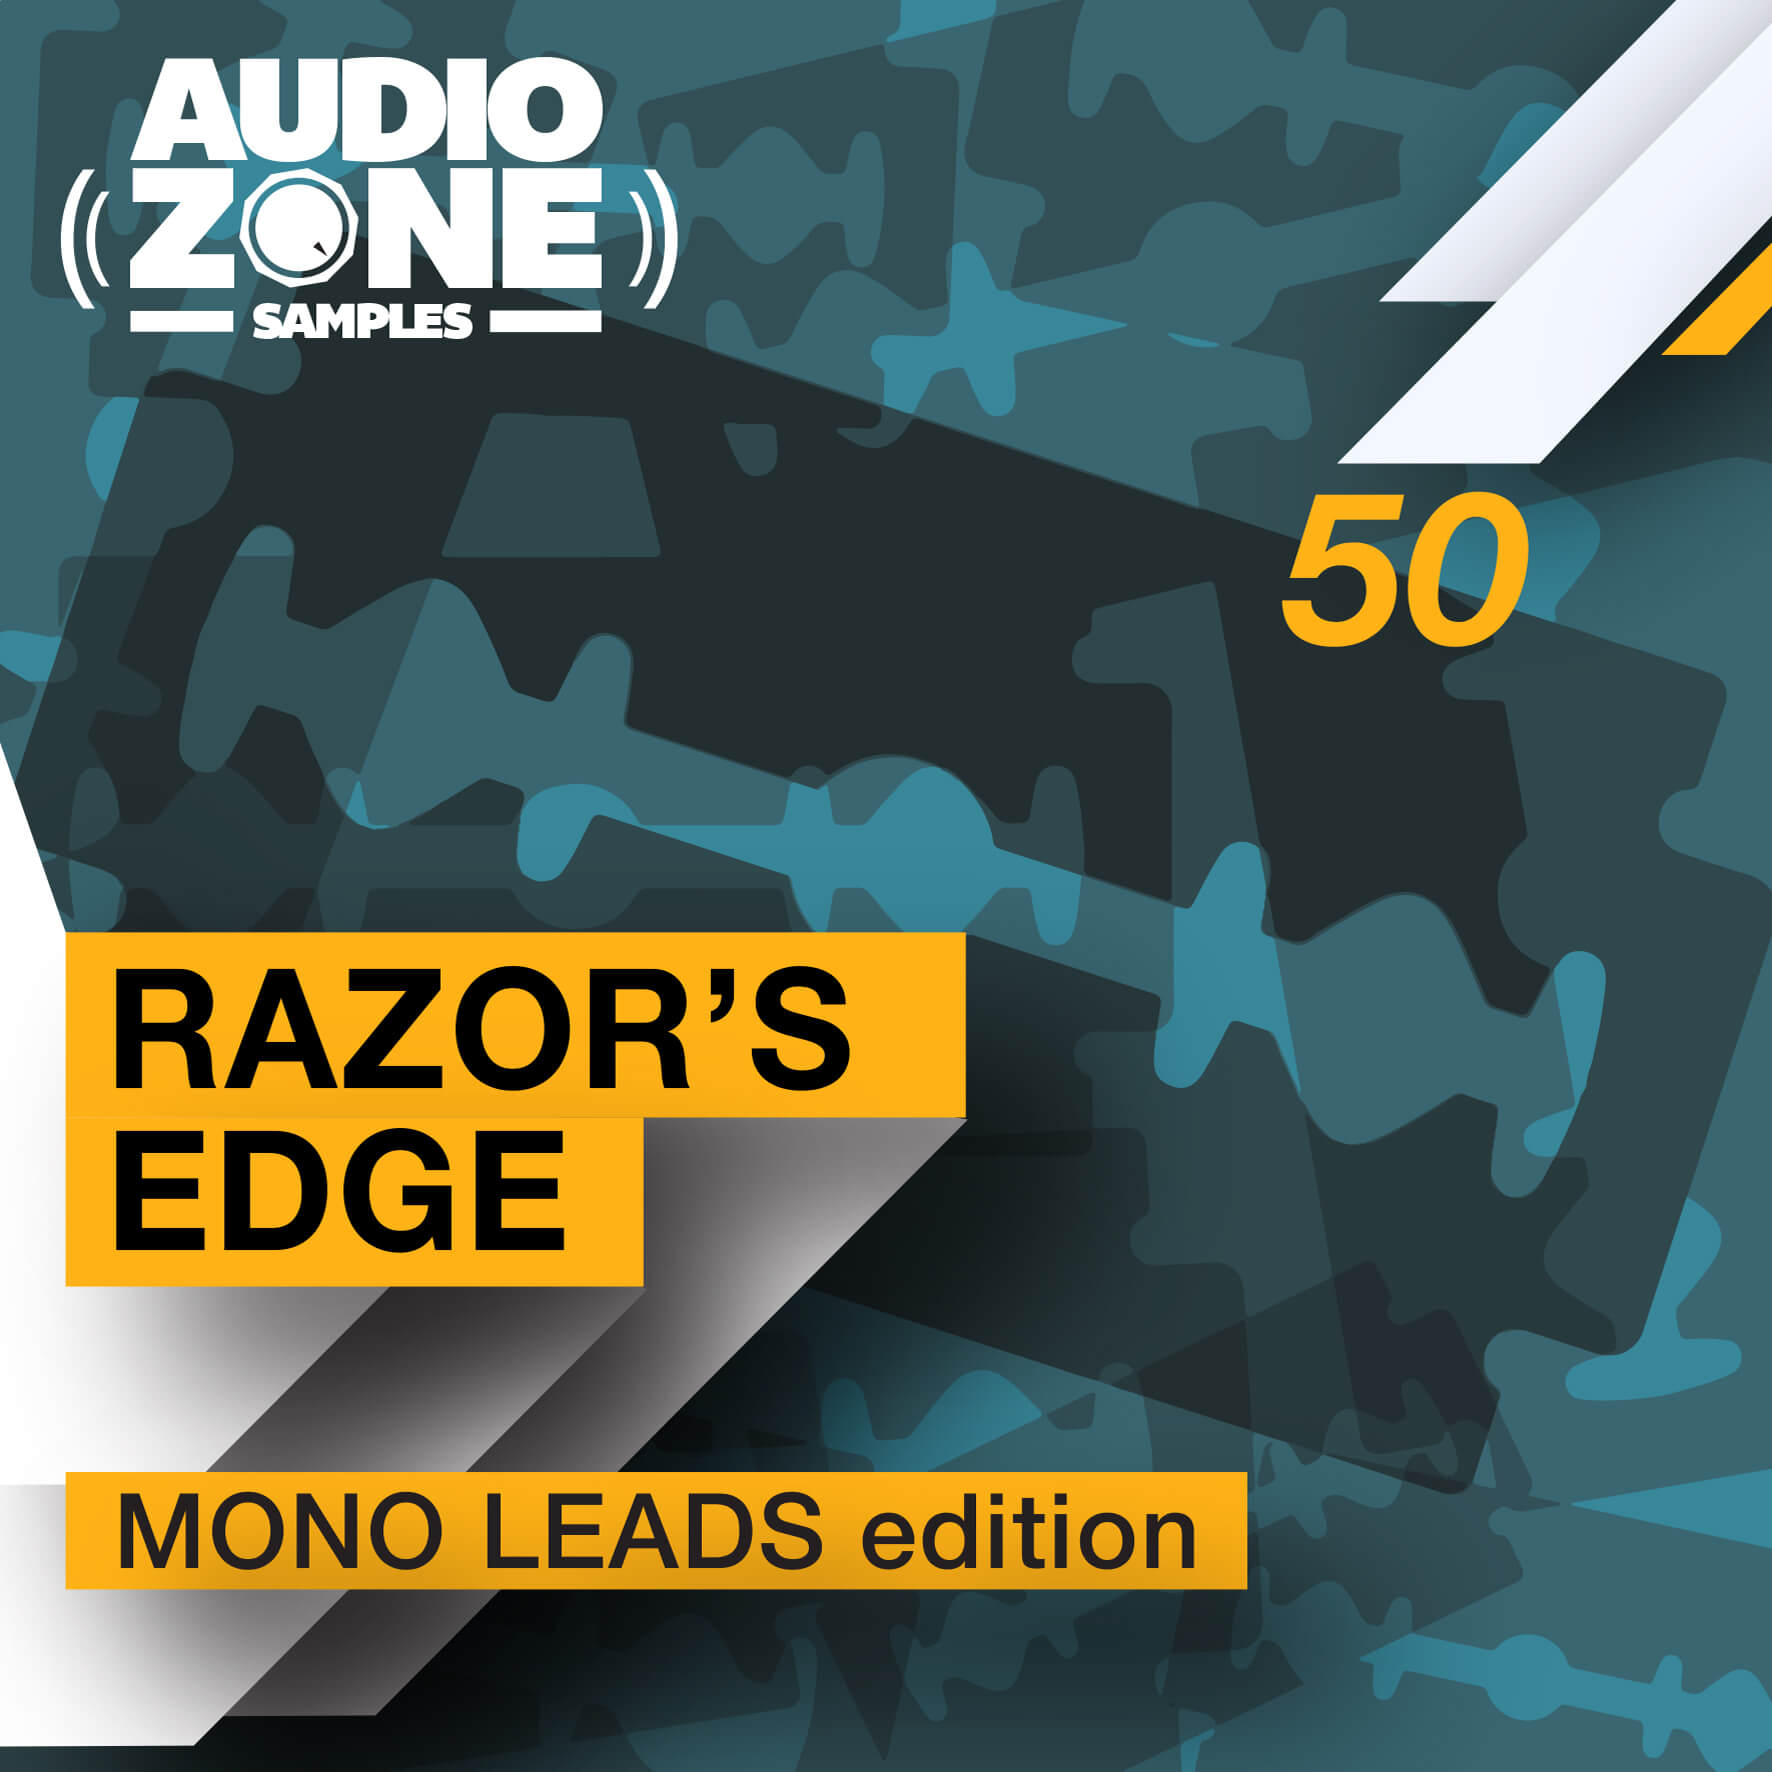 RAZOR'S EDGE - Leads Edition